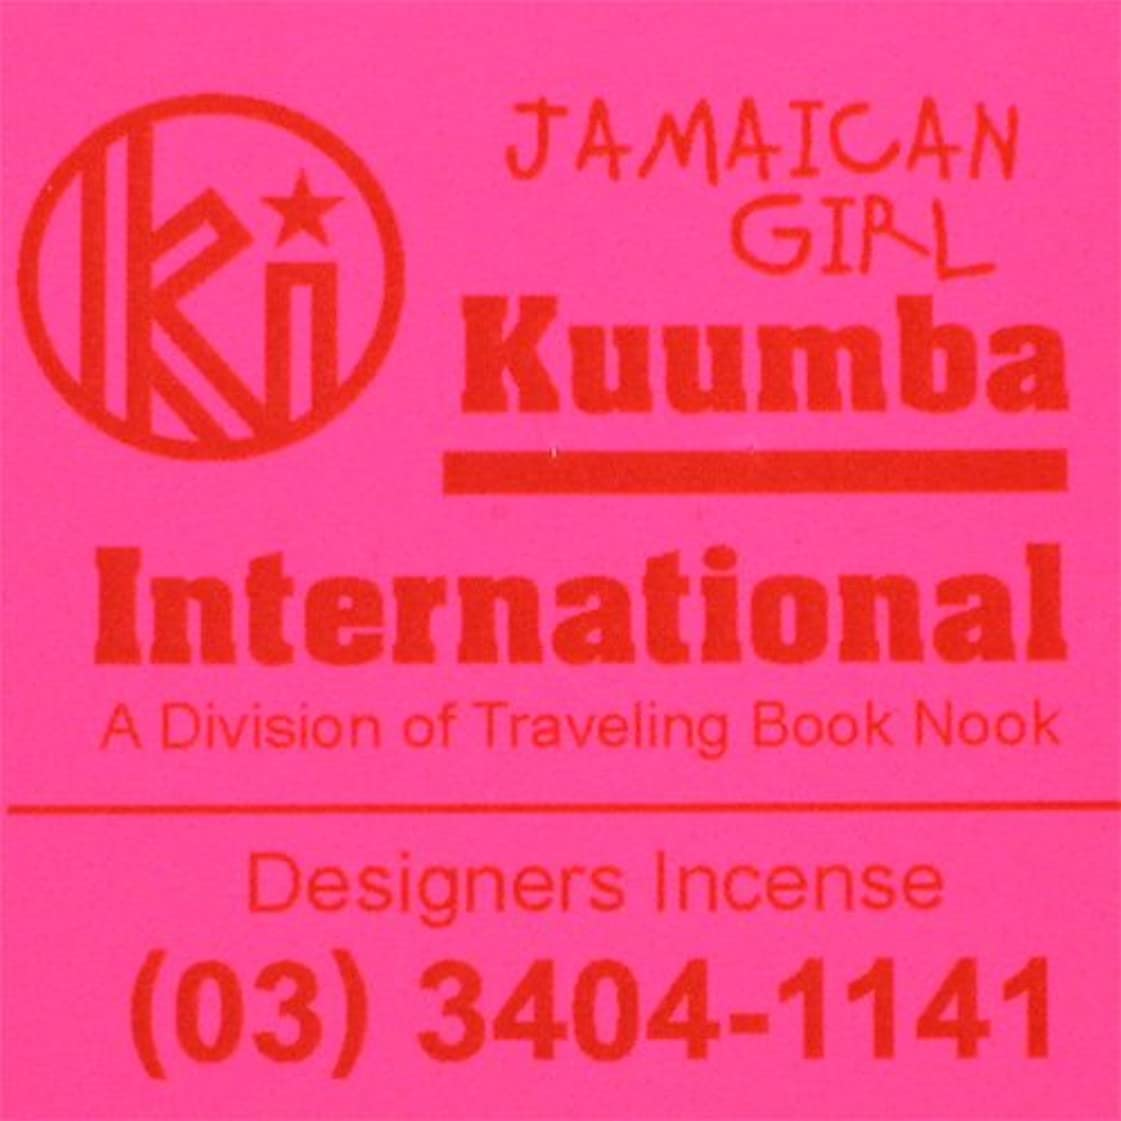 ジム帆ハントKUUMBA / クンバ『incense』(JAMAICAN GIRL) (Regular size)